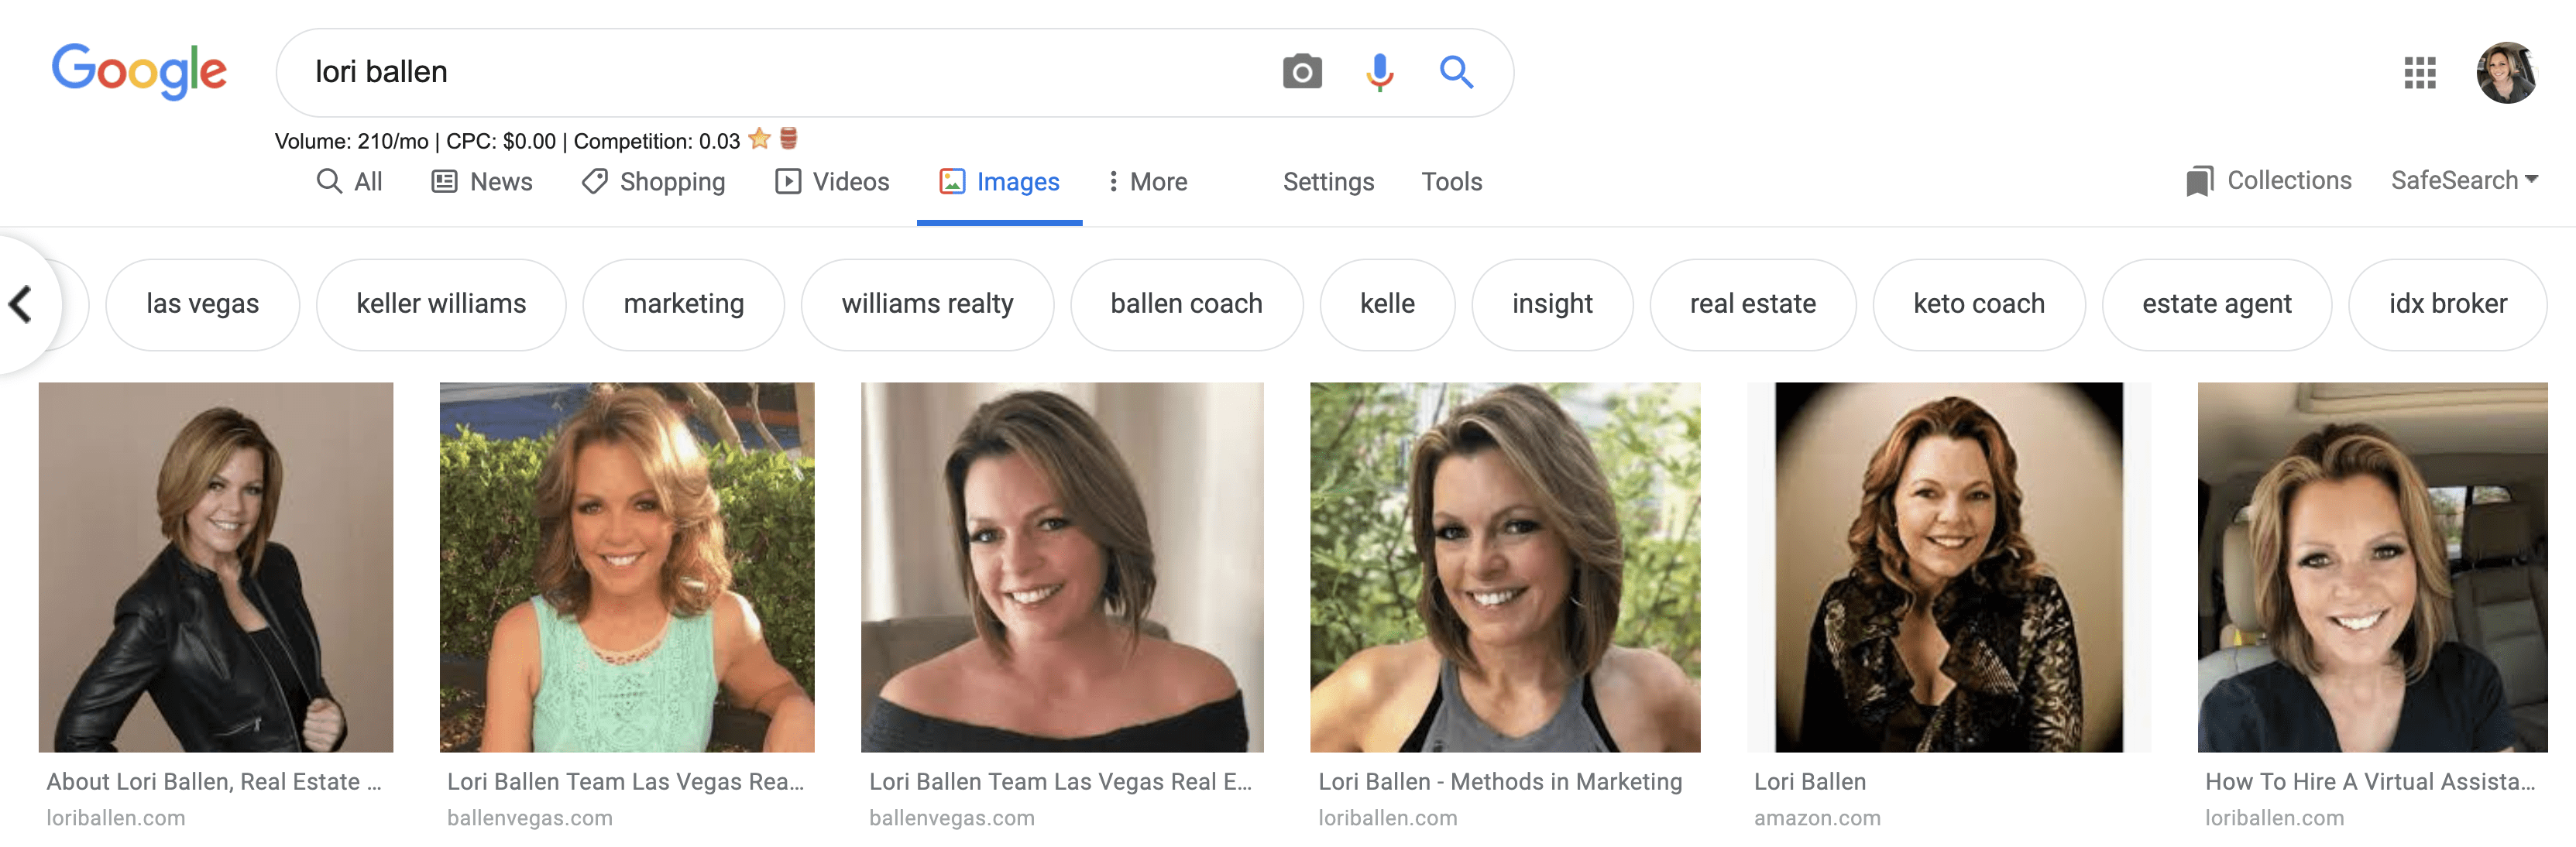 A sample of a carousel of keywords that appear in the images after someone types in a search query. This is Lori Ballen and the keywords say las vegas, keller williams, marketing, williams realty, ballen coach, kelle, insight, real estate, keto coach, real estate agent, idx broker and more